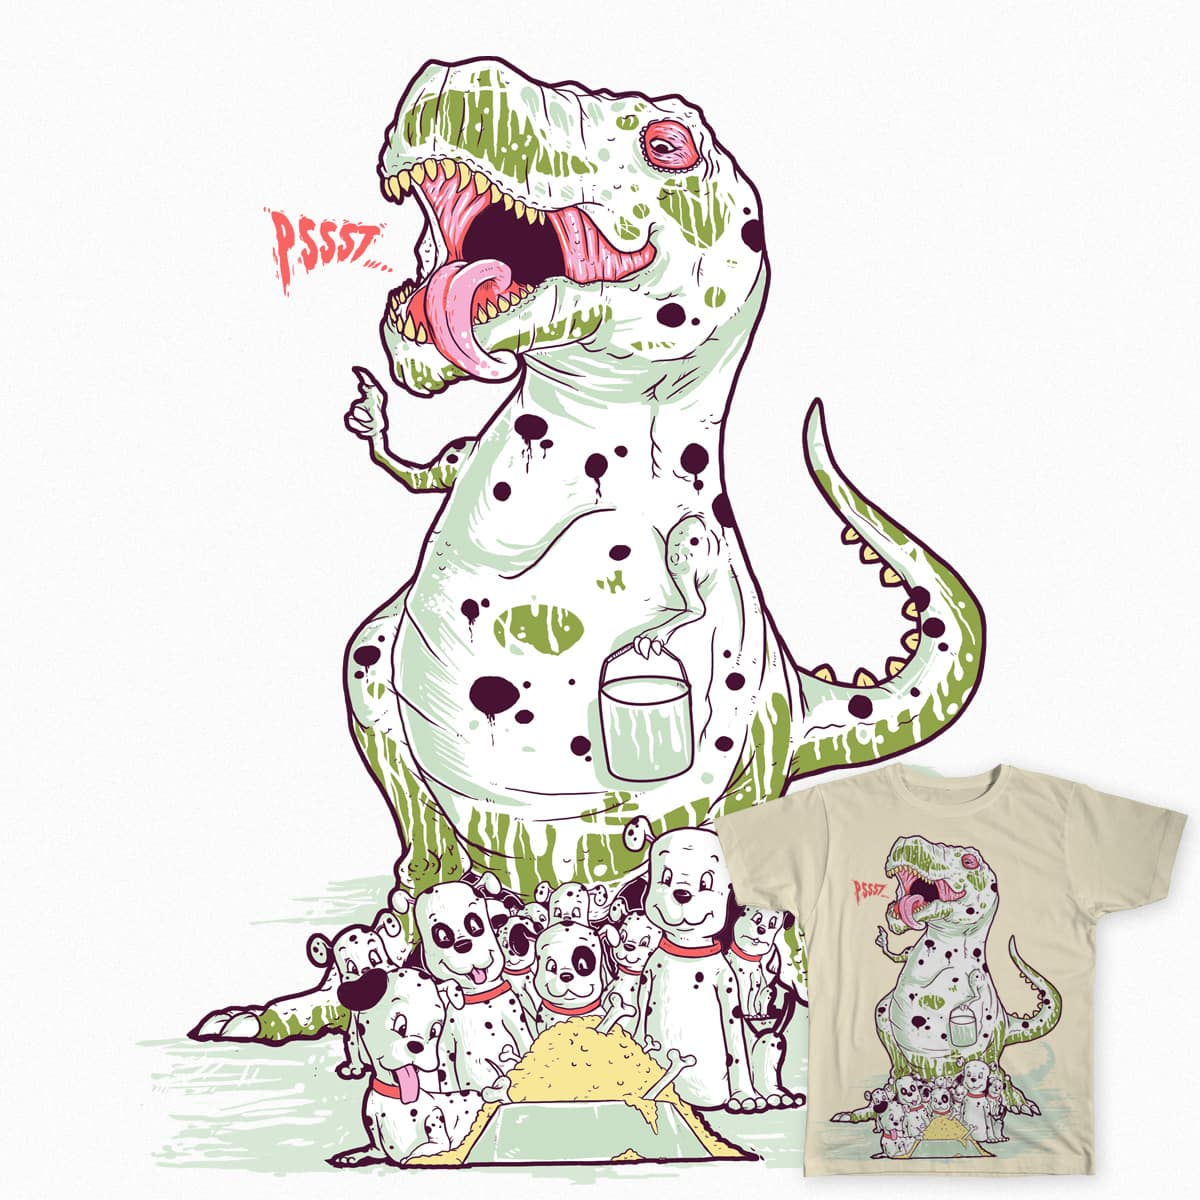 Dinomatian 101 by aparoundtheworld on Threadless